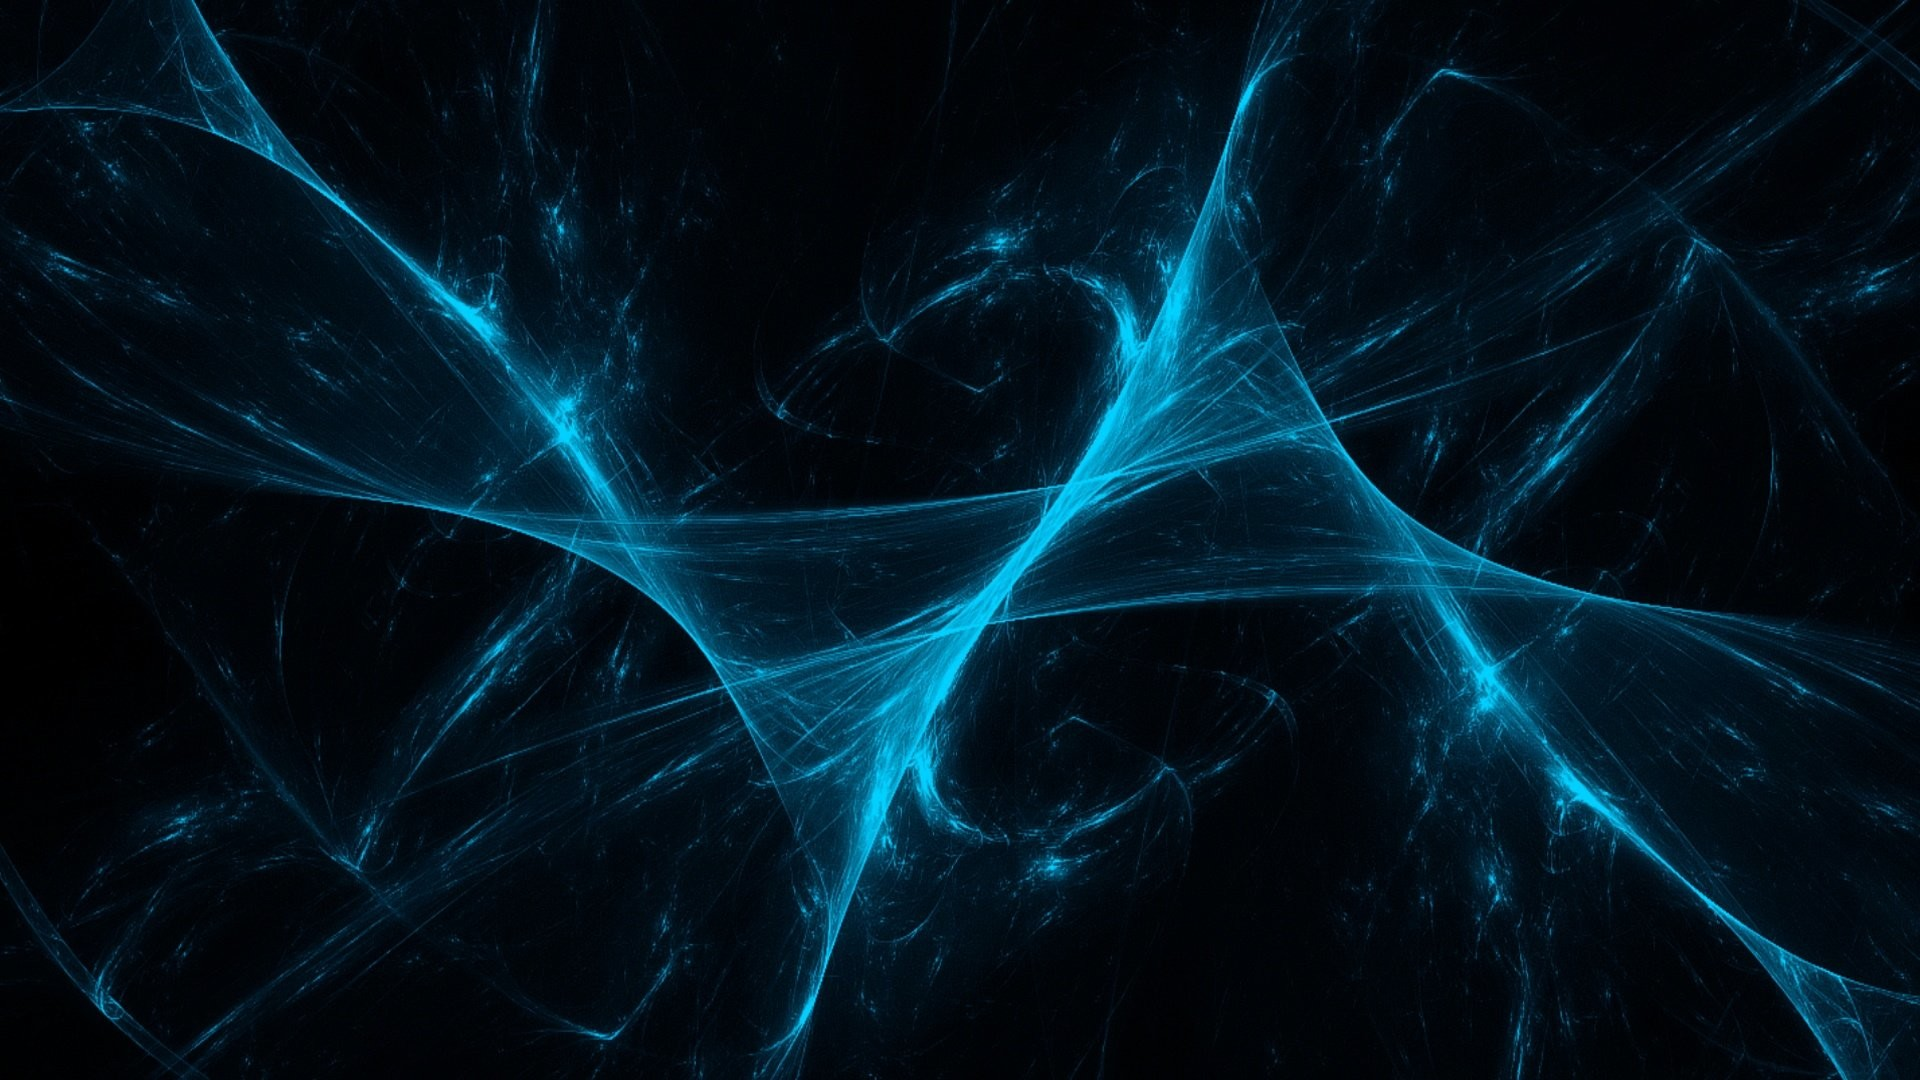 1920x1080 wallpapers-abstract-background-black-smoke-blue-backgrounds-image.